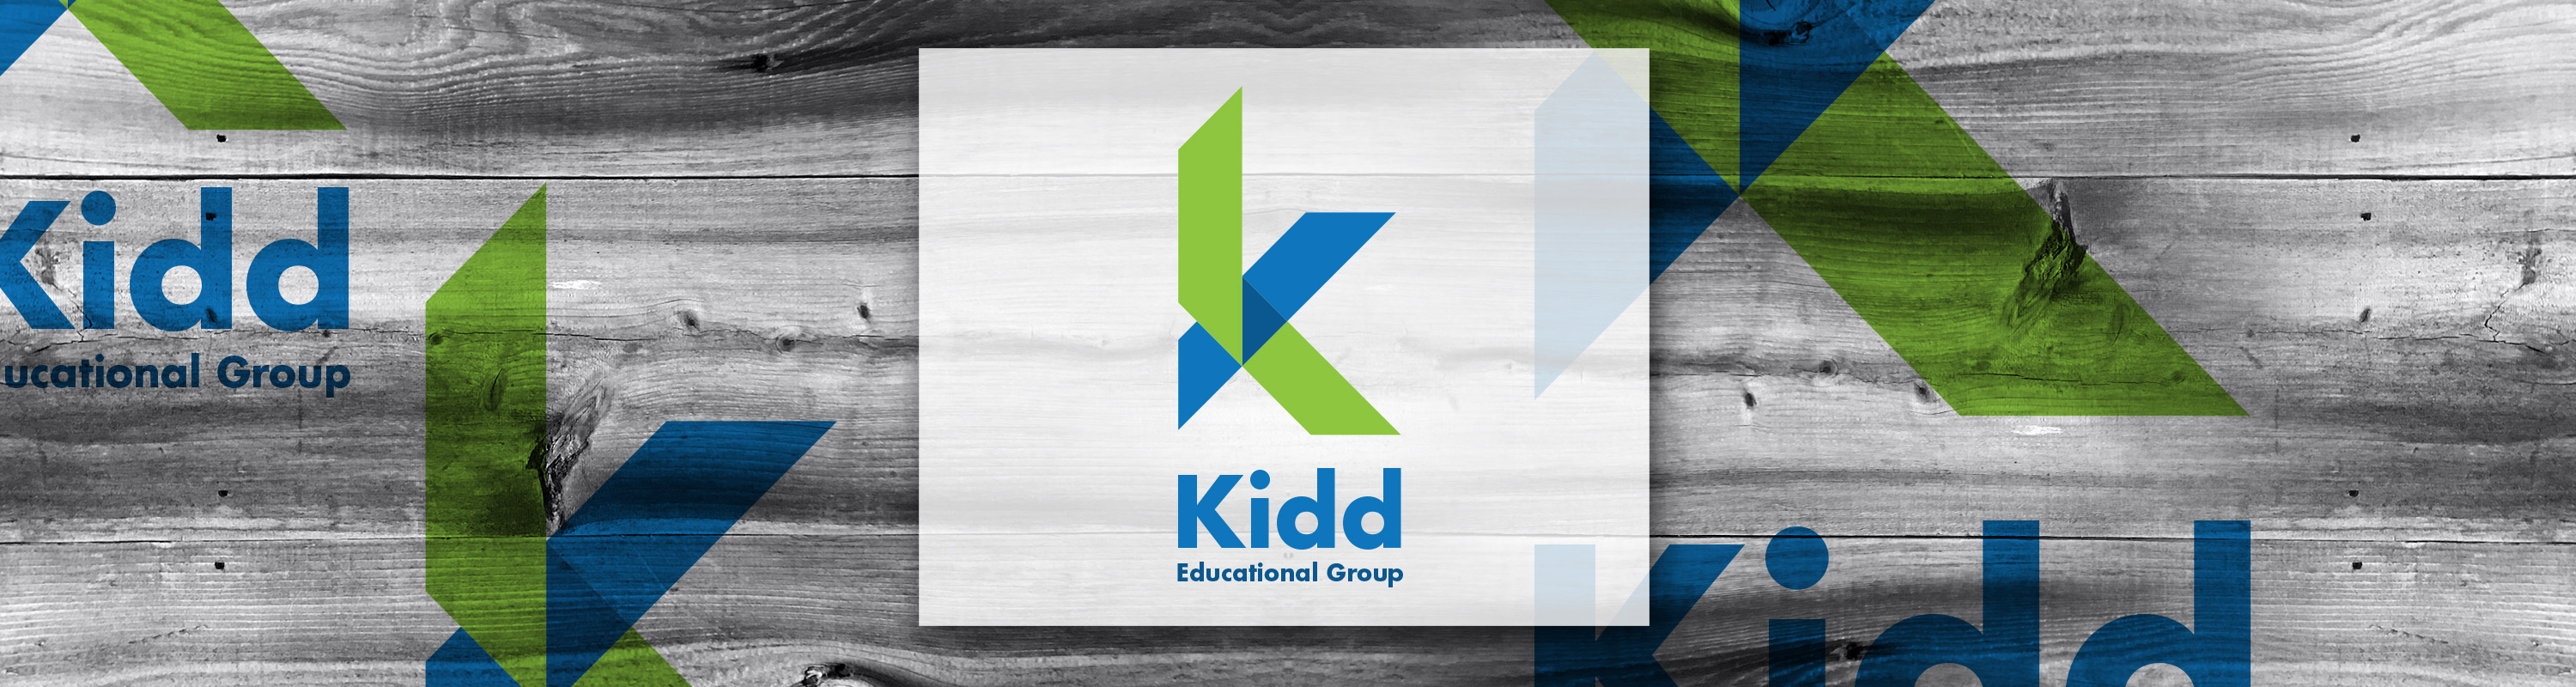 Fort Collins Logo Design: Kidd Educational Group